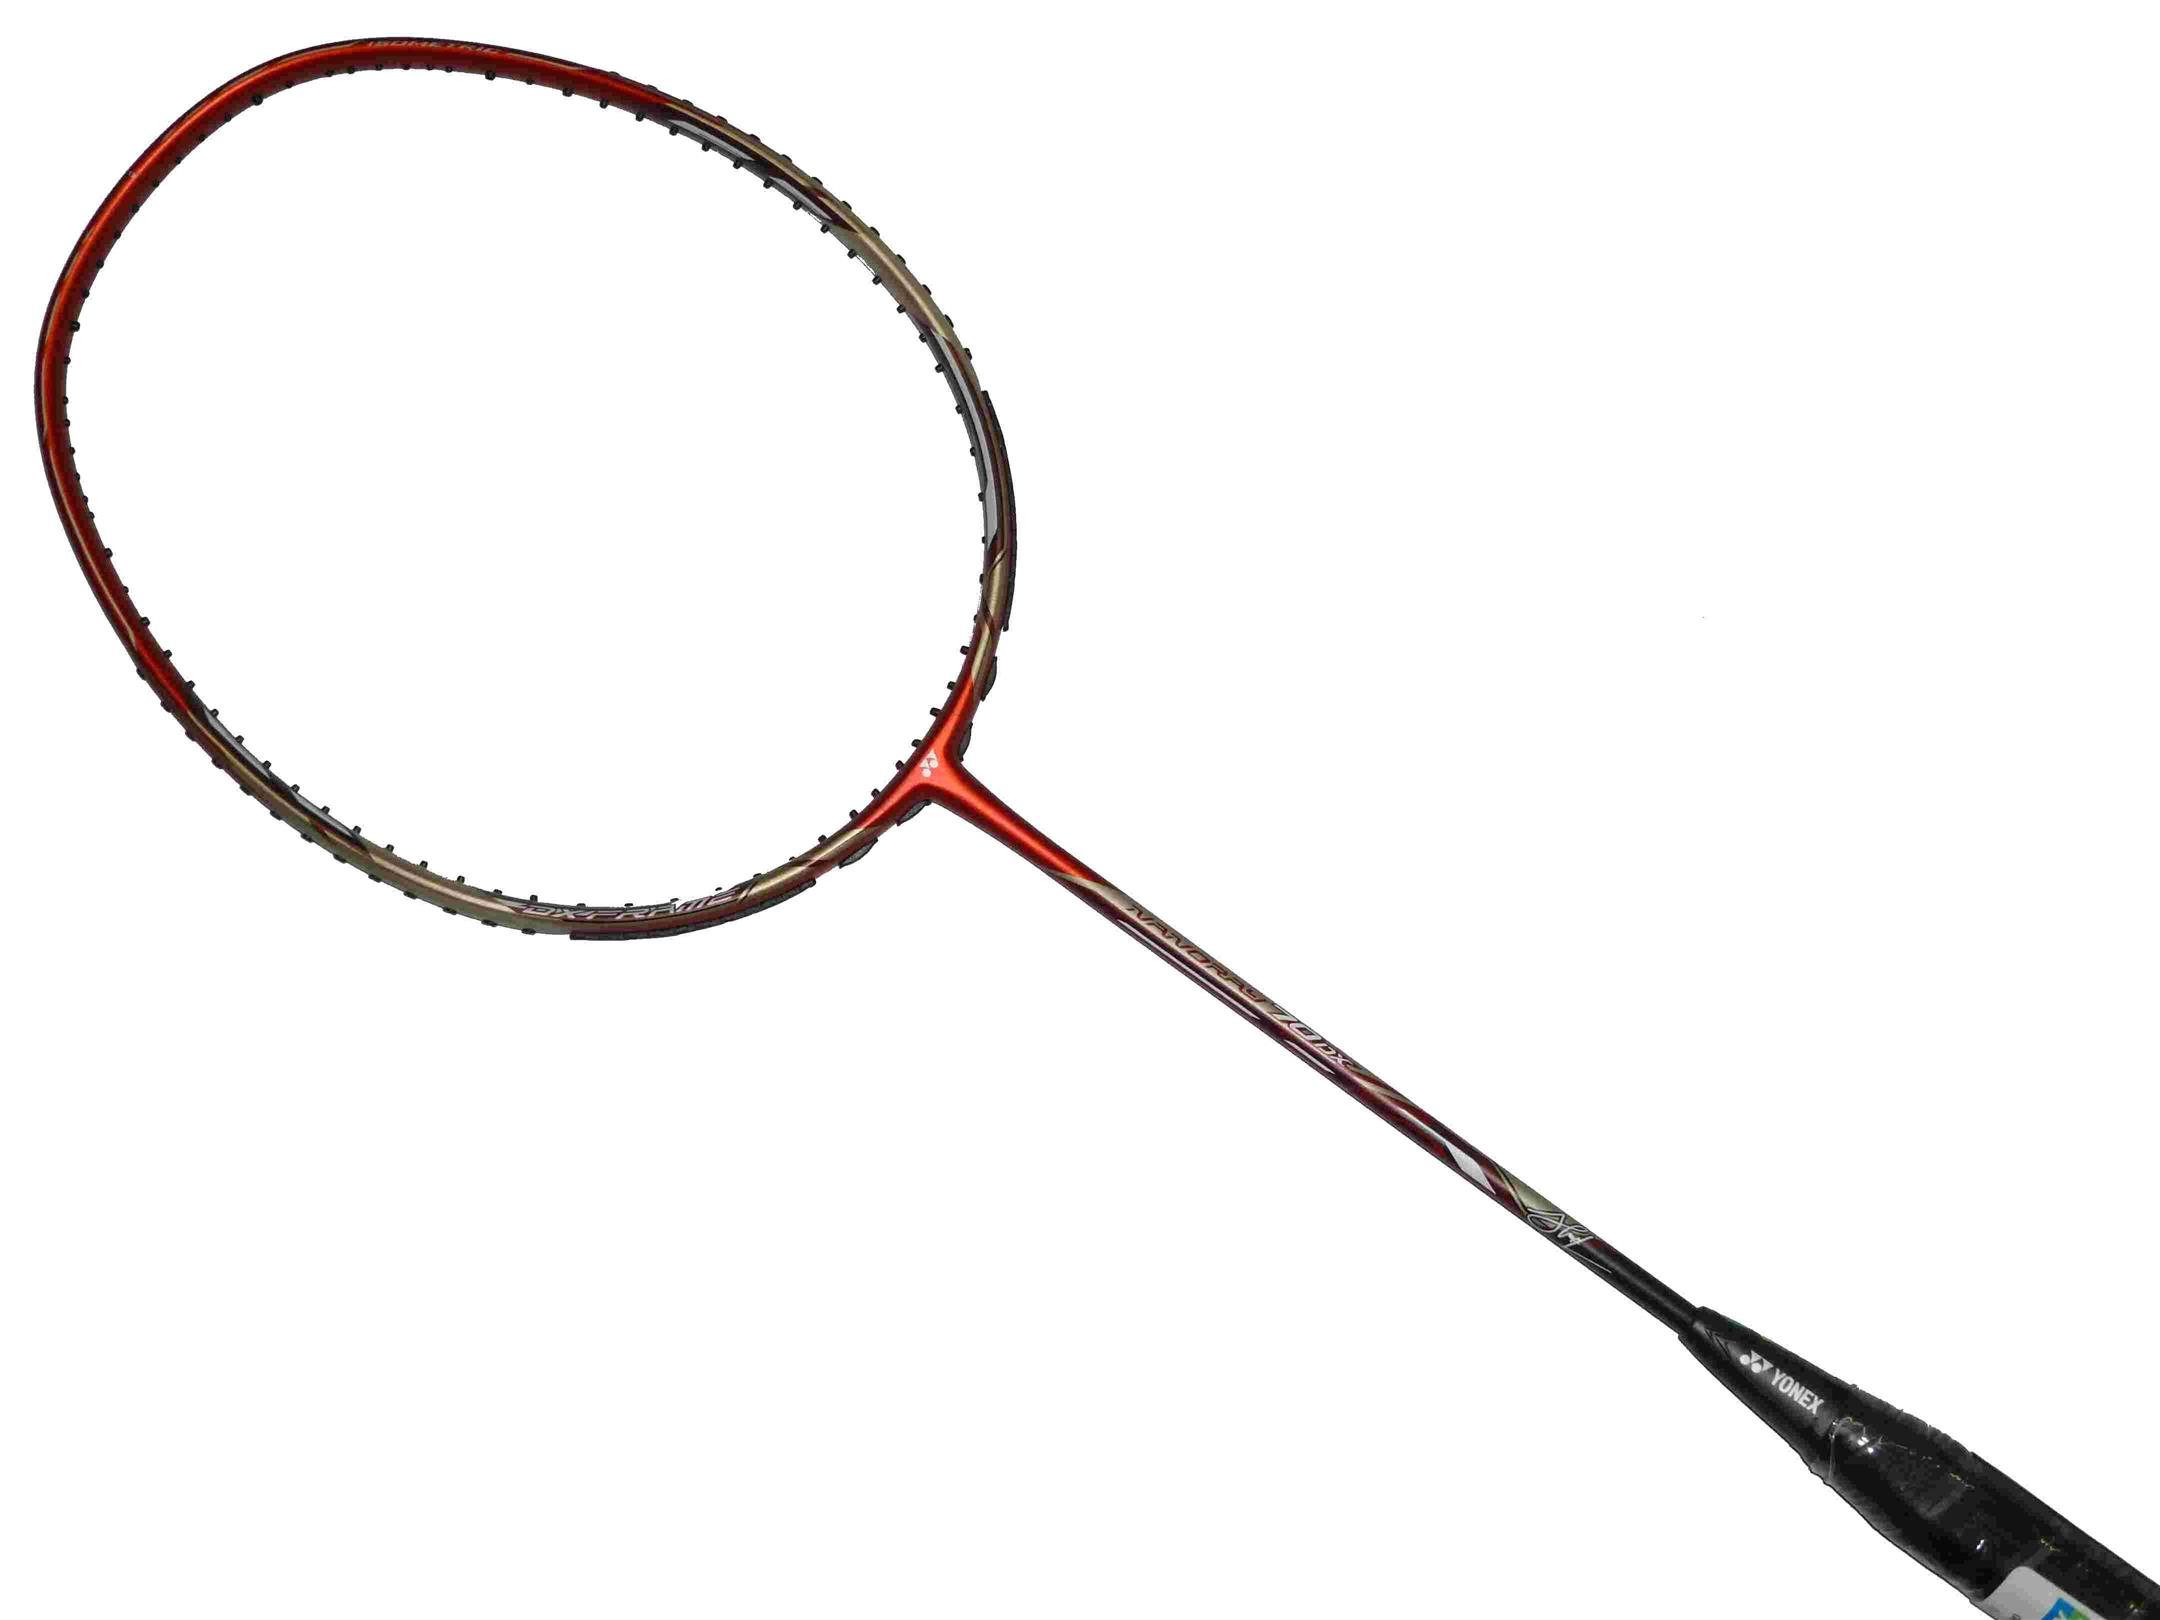 Yonex Nanoray 70DX Badminton Racket FREE Made-in Japan String and Grip